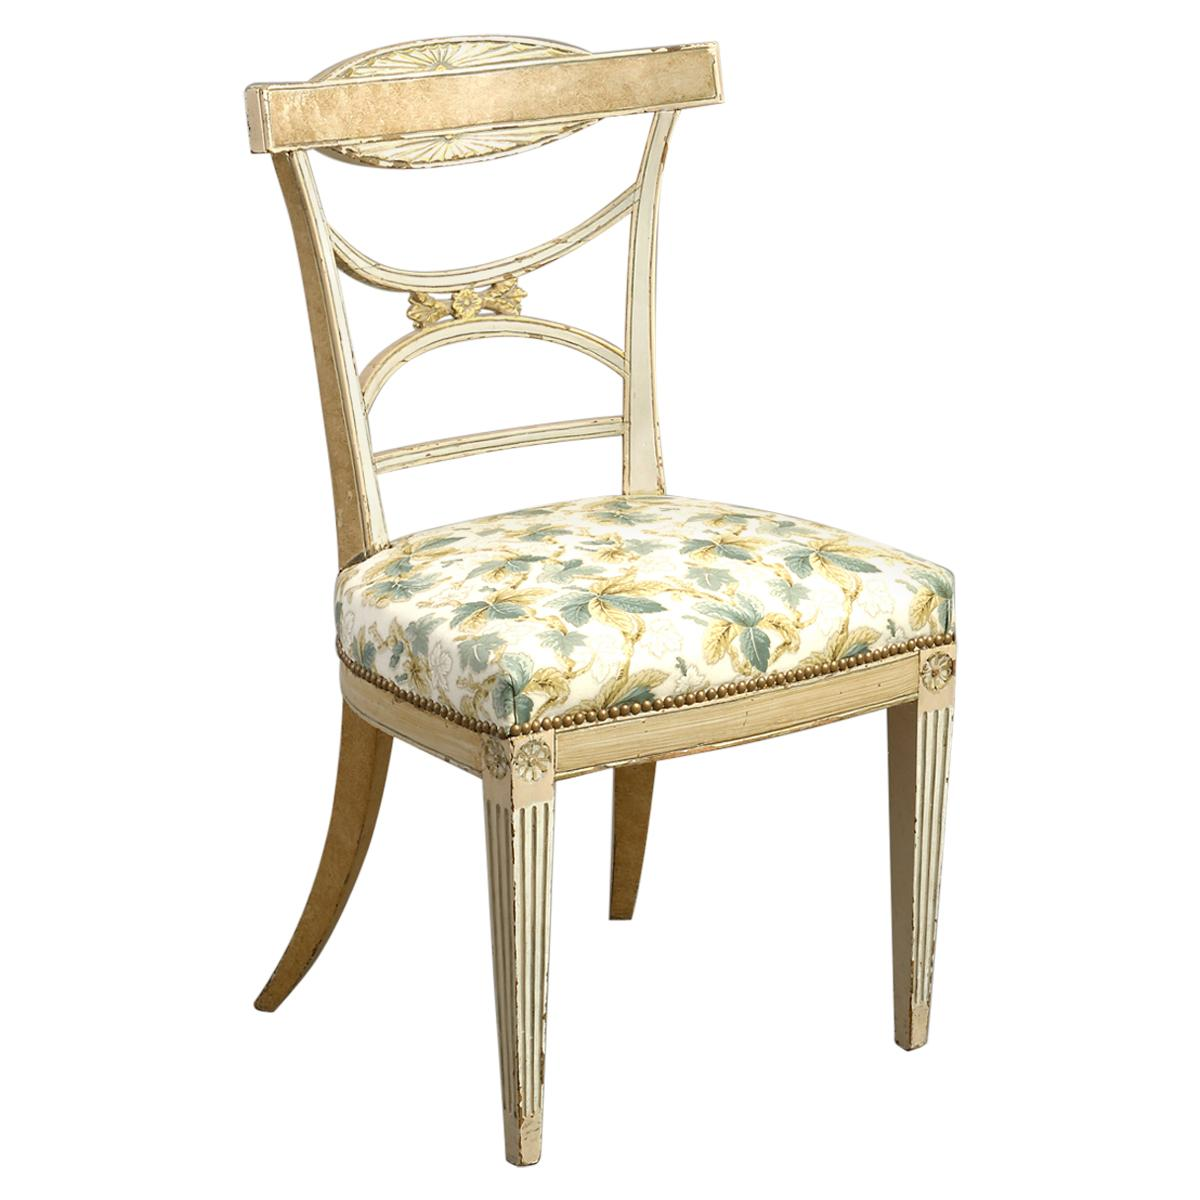 Early 19th Century Painted Gustavian Side Chair